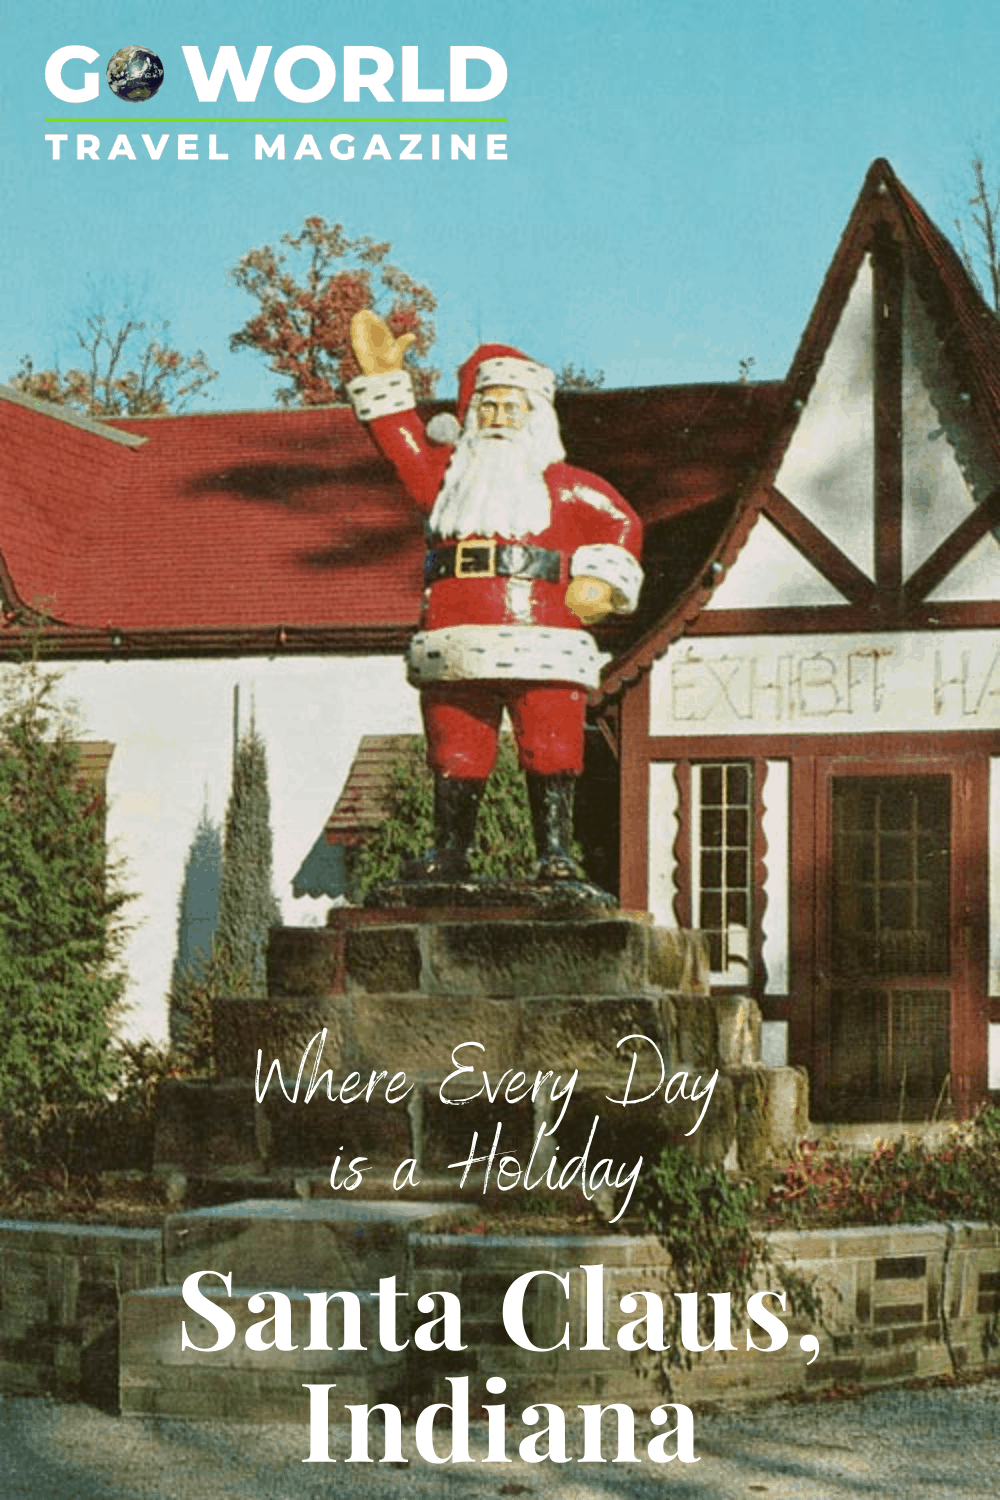 Santa Claus, Indiana where every day is a holiday #santaclausindiana #santaclaus #indianaholidays #holidayworldsantaclausindiana #thingstodoinsantaclausindiana #goworldtravel